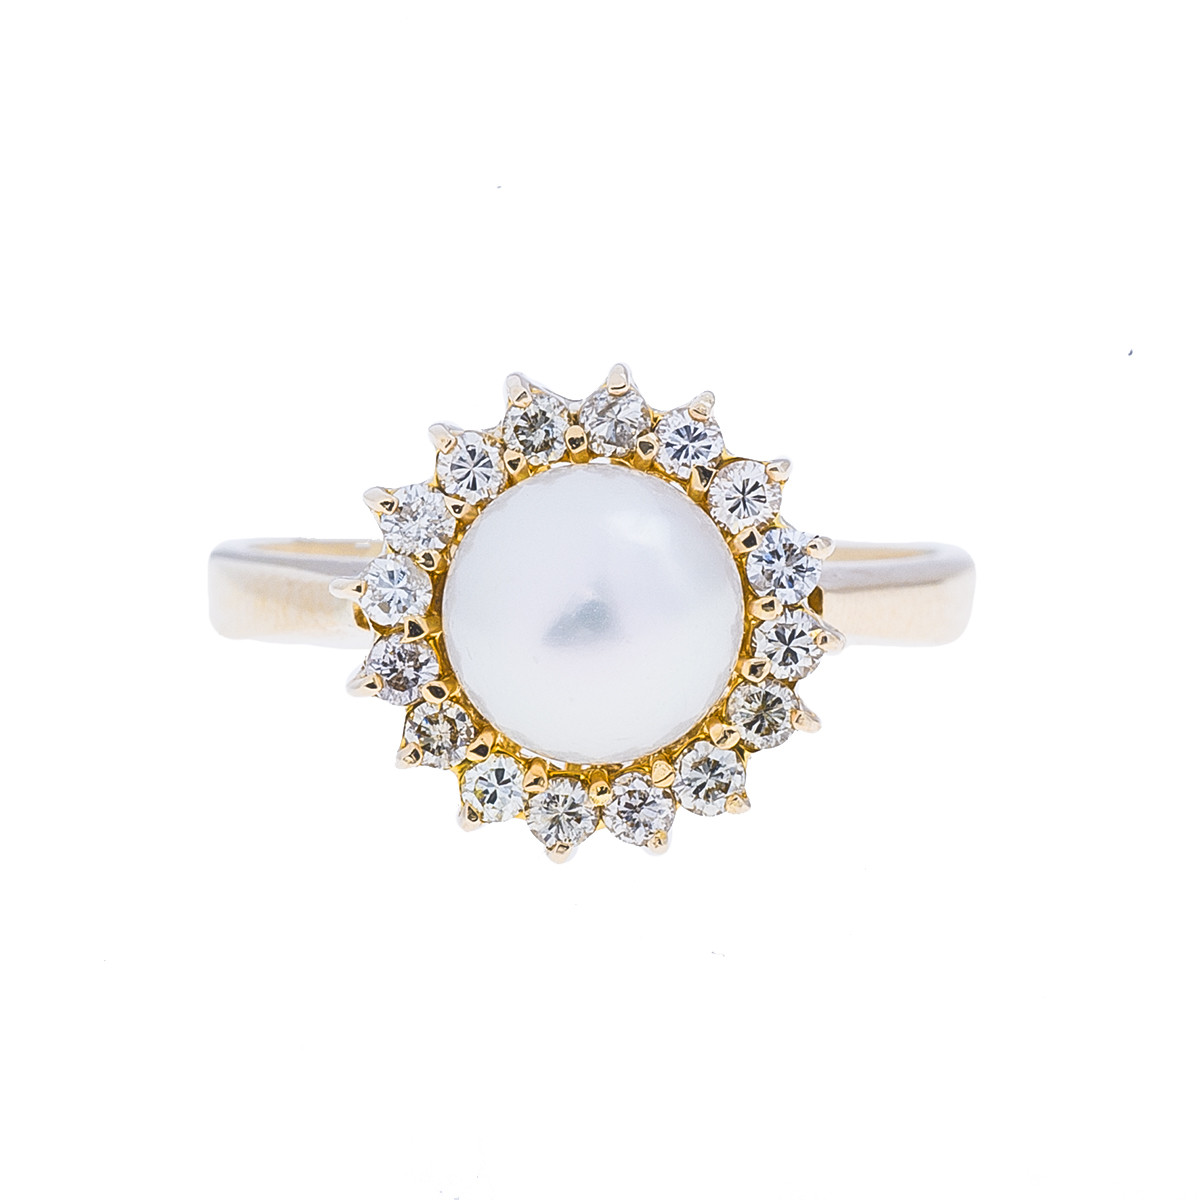 Vintage 0.16 CTW Diamond & White Cultured Pearl Ring